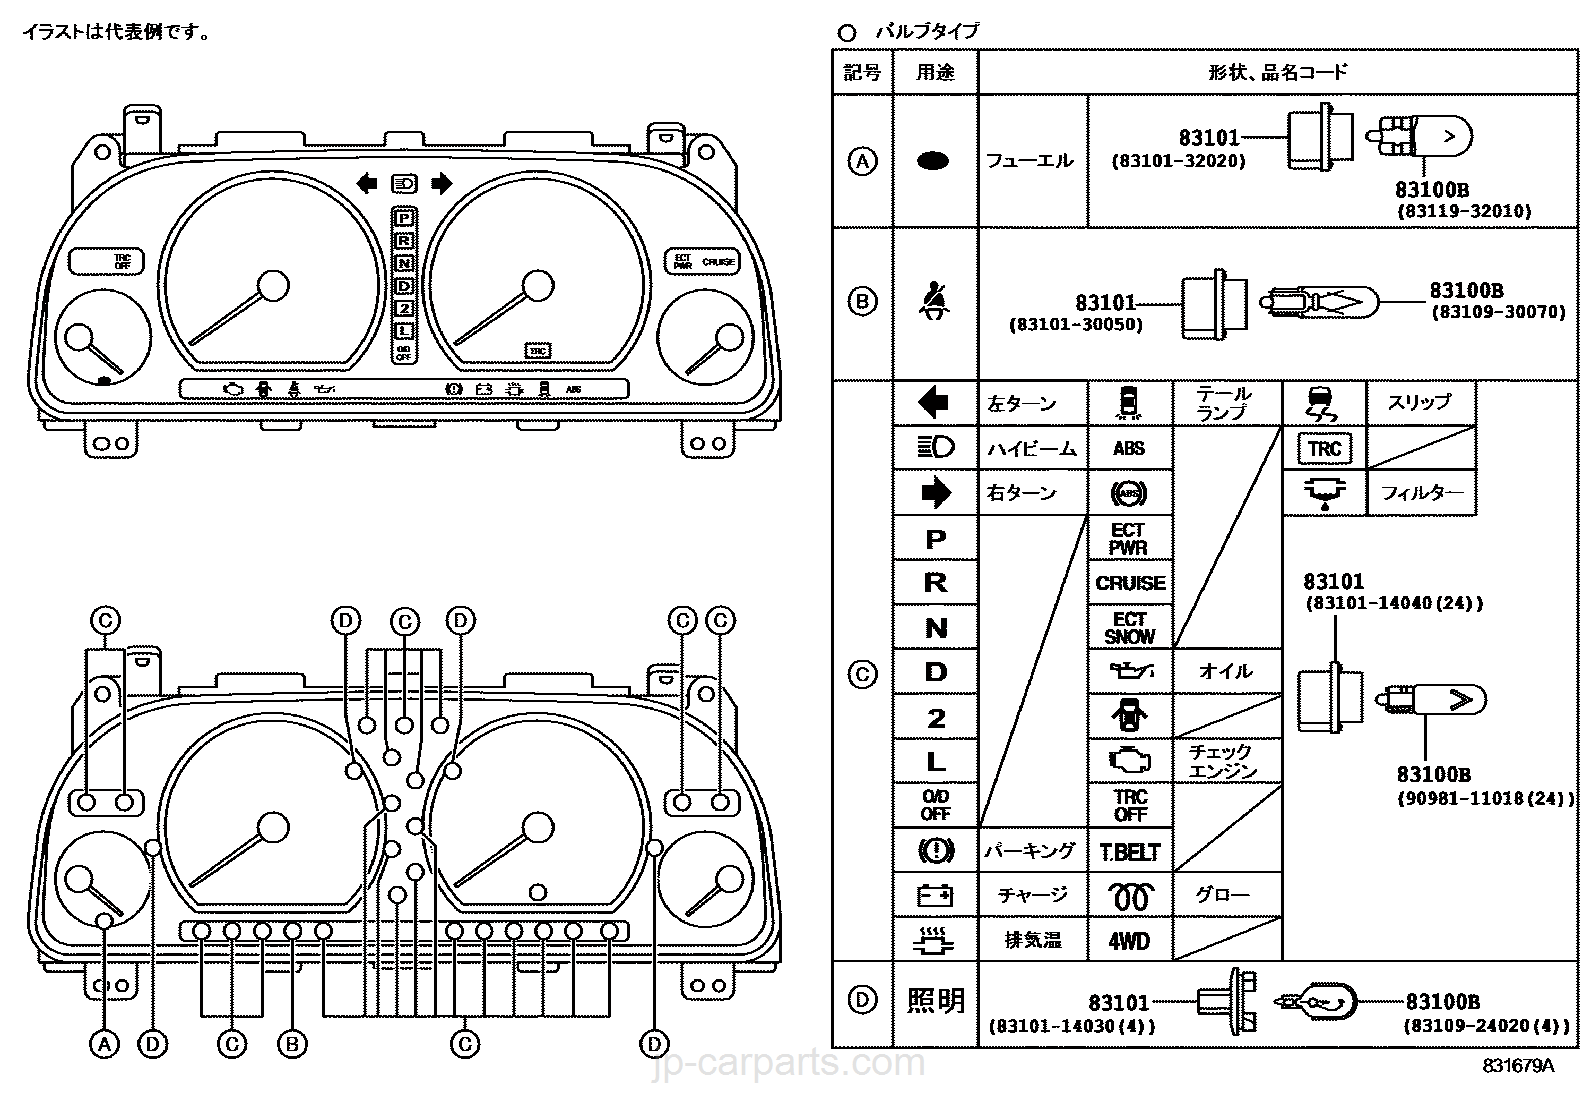 Toyota Mark 2 Jzx90 Wiring Diagram Library Fuse Box Select Image Size